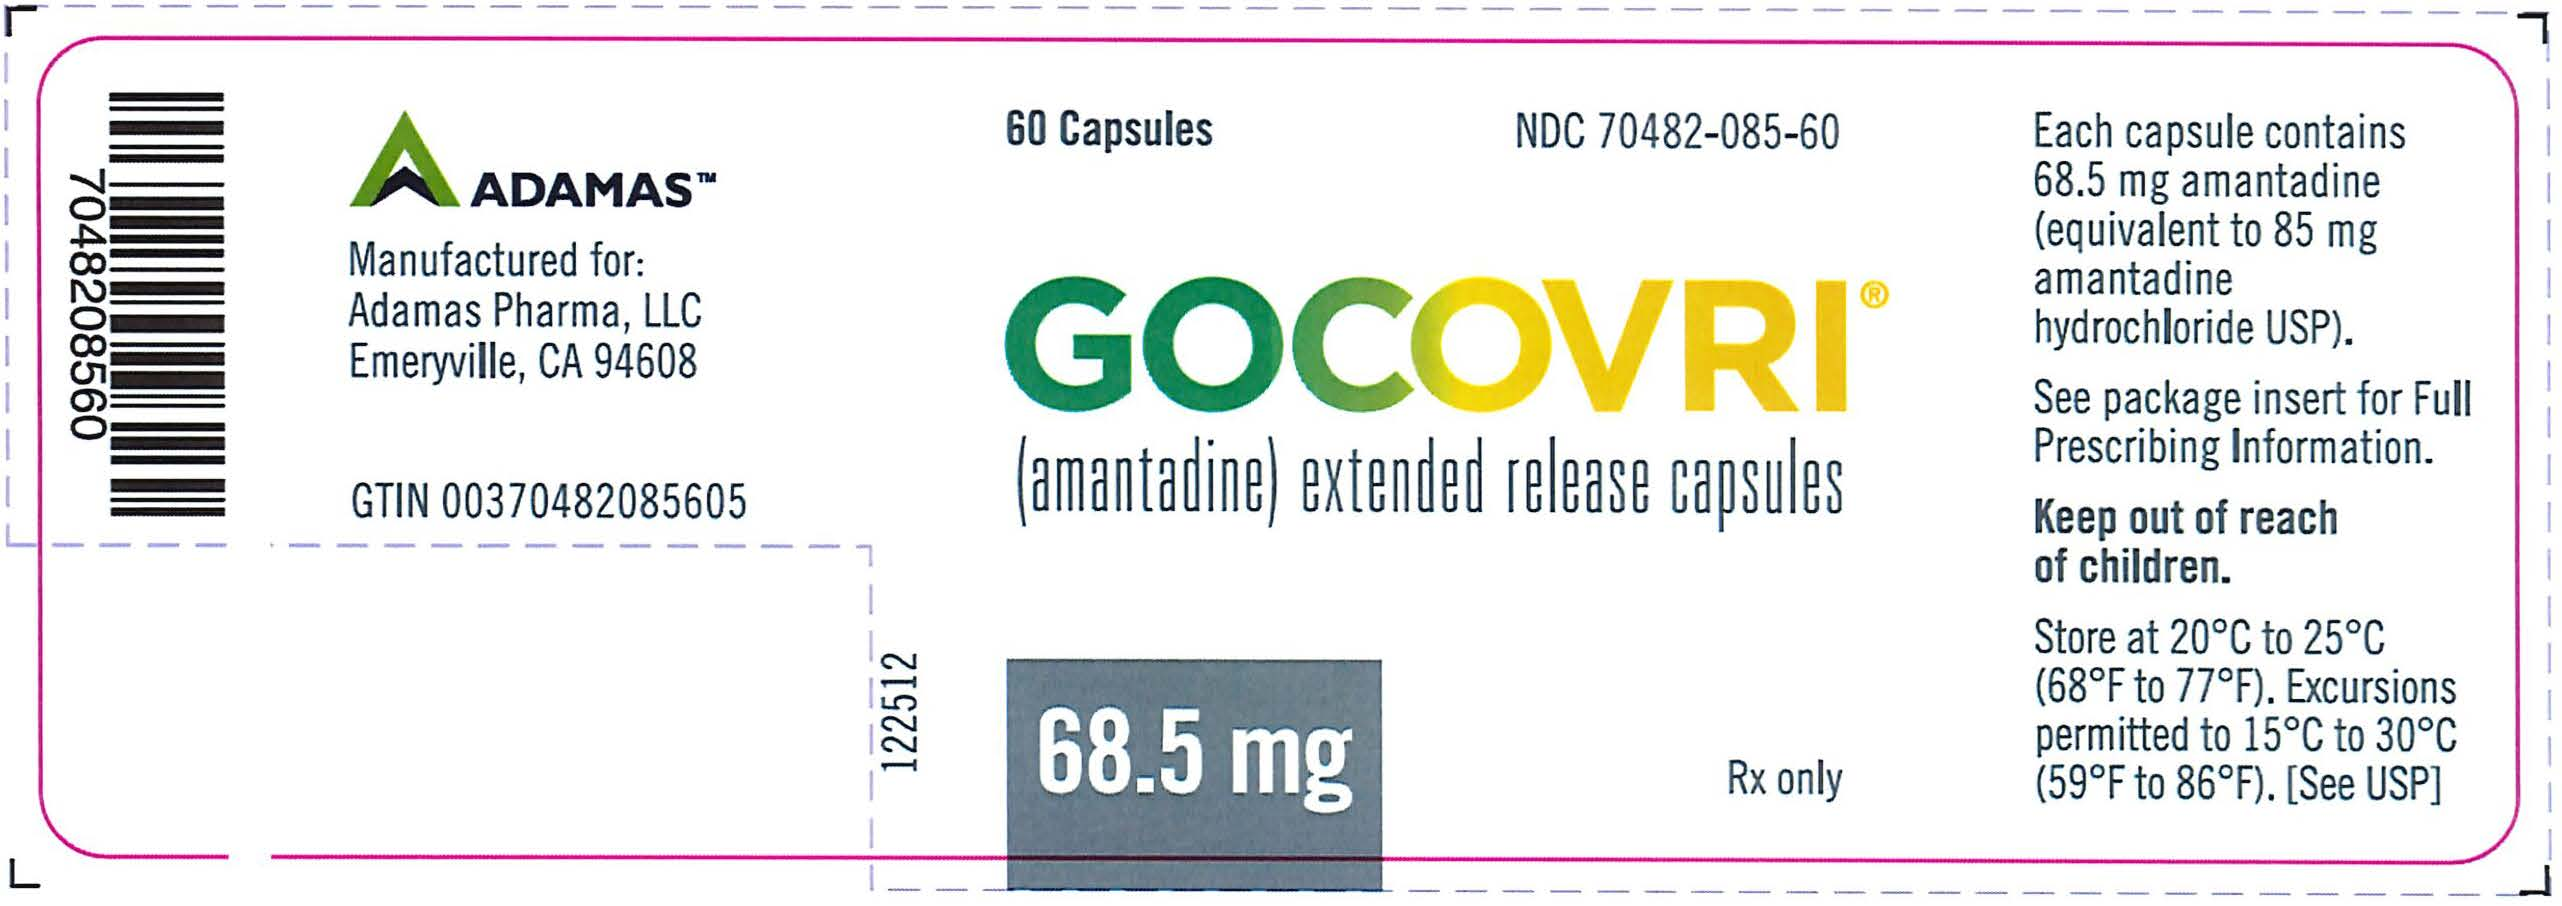 Rx Item-Gocovri- Amantadine Capsule, Coated Pellets 68.5Mg 60 Capsules By Adamis